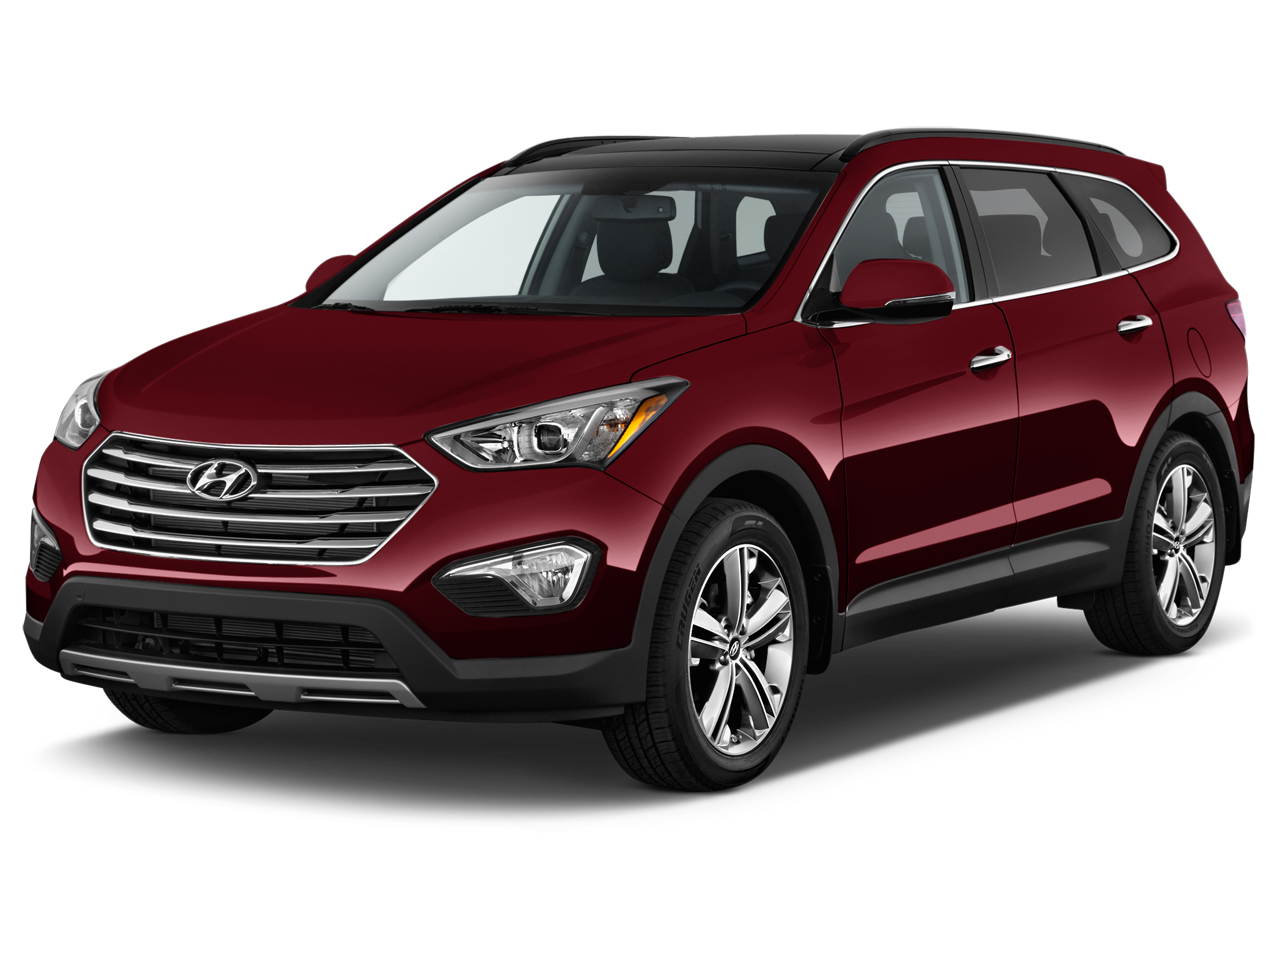 2016 hyundai santa fe for sale with photos carfax autos post. Black Bedroom Furniture Sets. Home Design Ideas